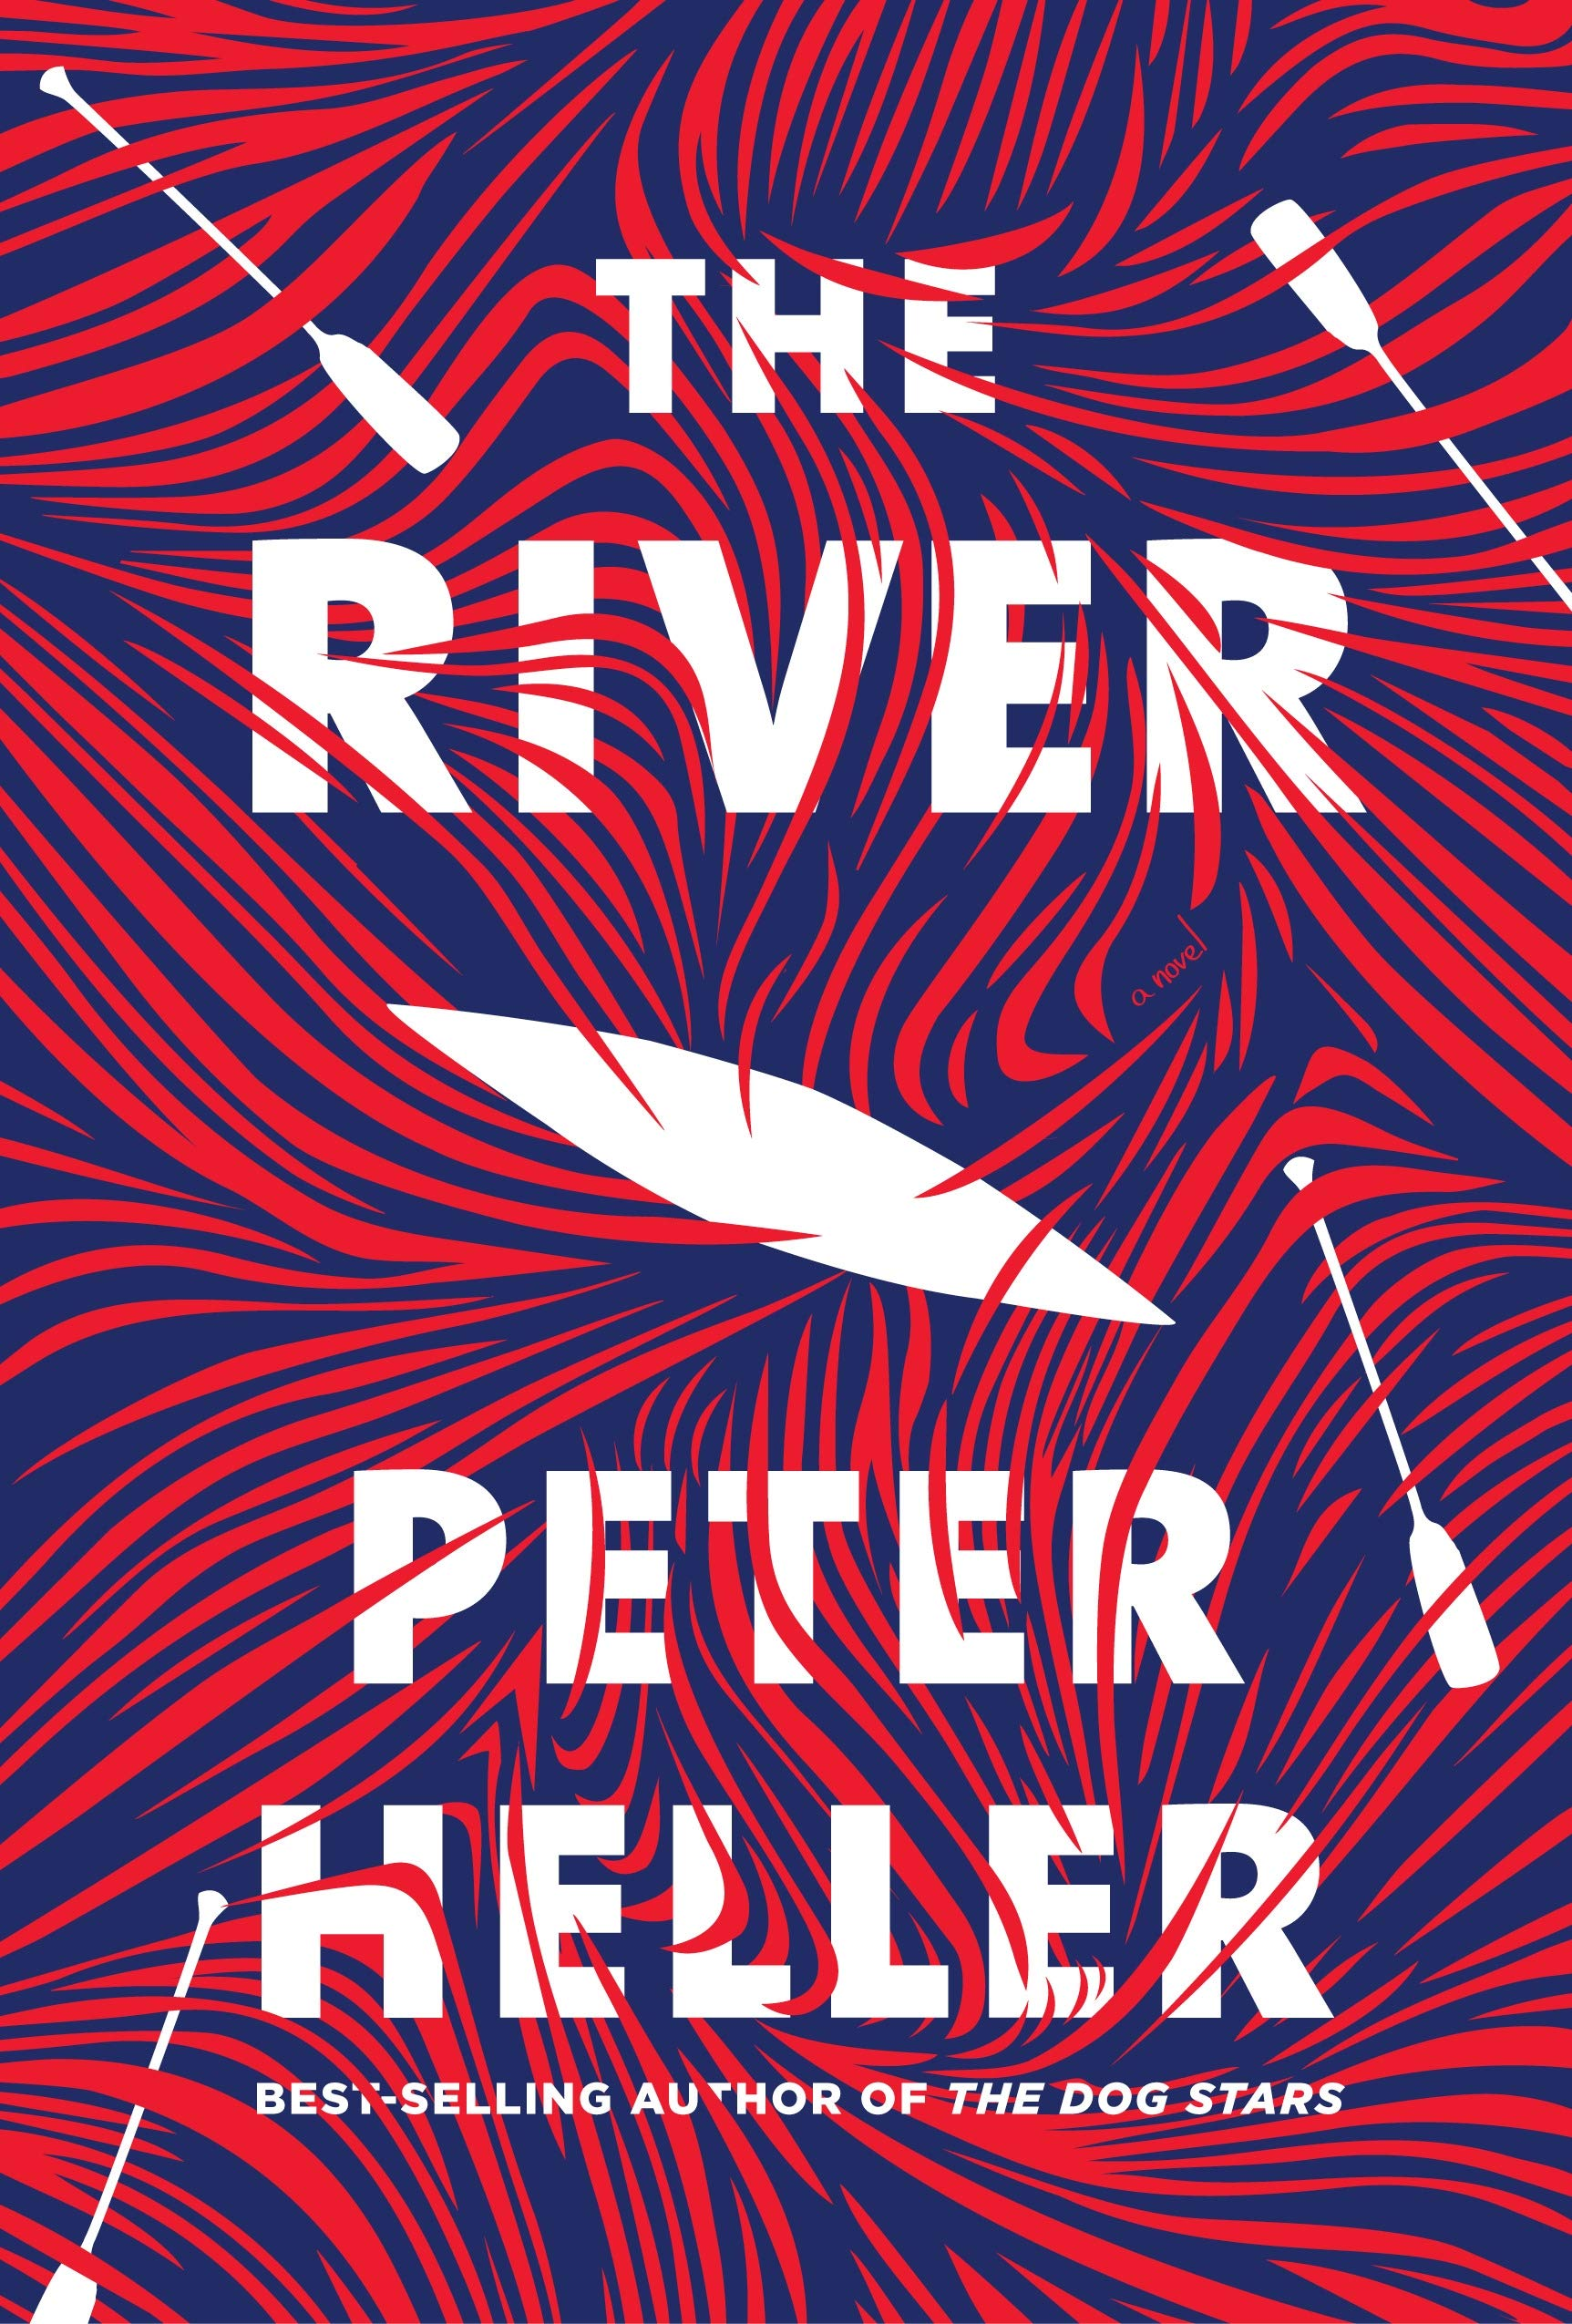 Image result for the river peter heller